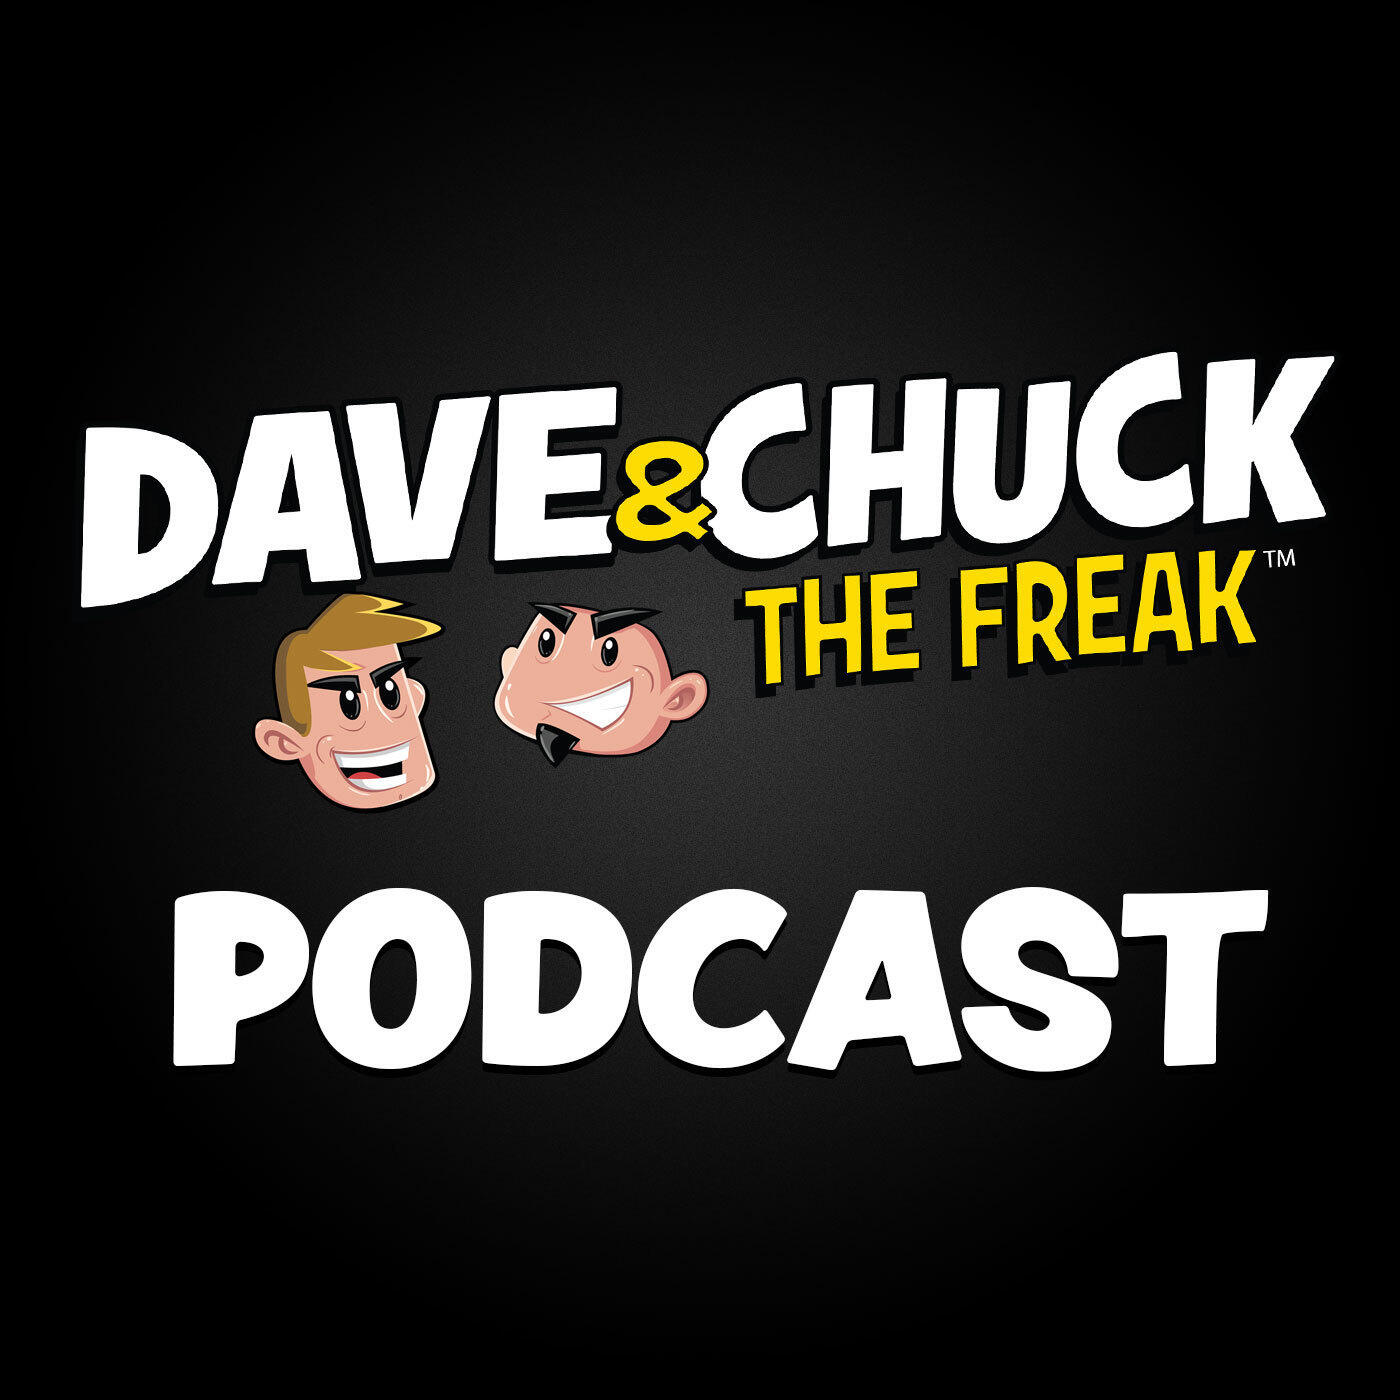 Tuesday, August 11th 2020 Dave & Chuck the Freak Podcast